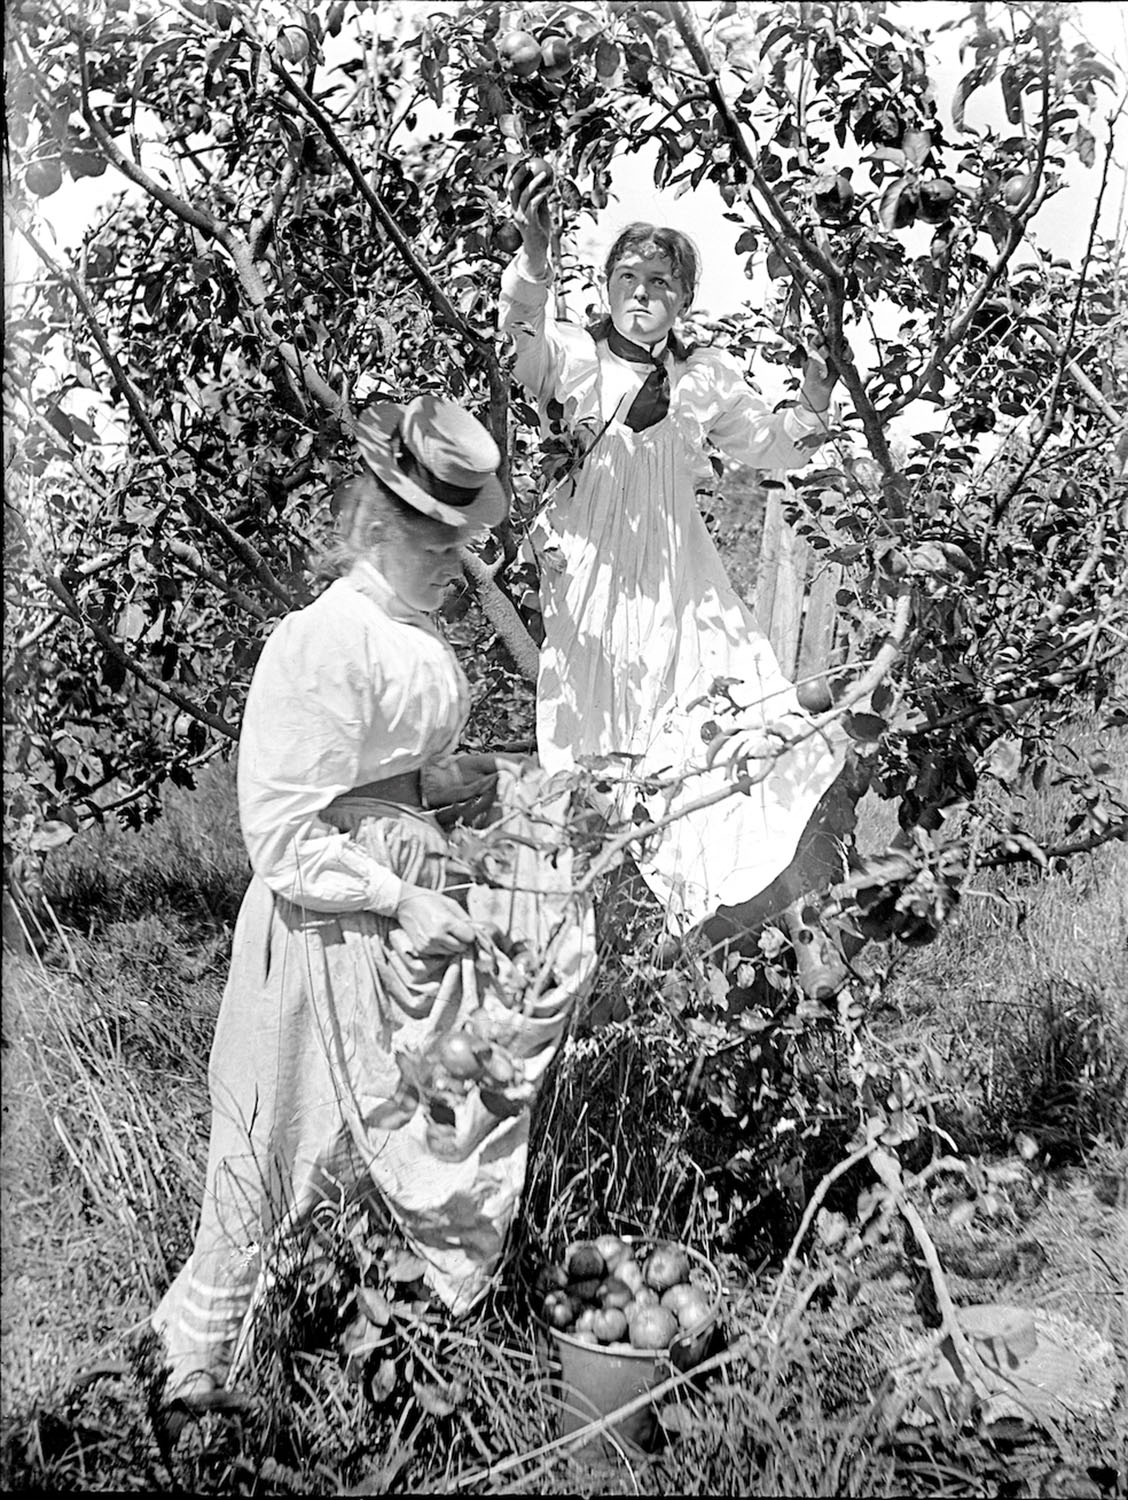 Women picking fruit. Likely North Island, New Zealand circa 1907 – 1911. Lemuel Lyes Collection.